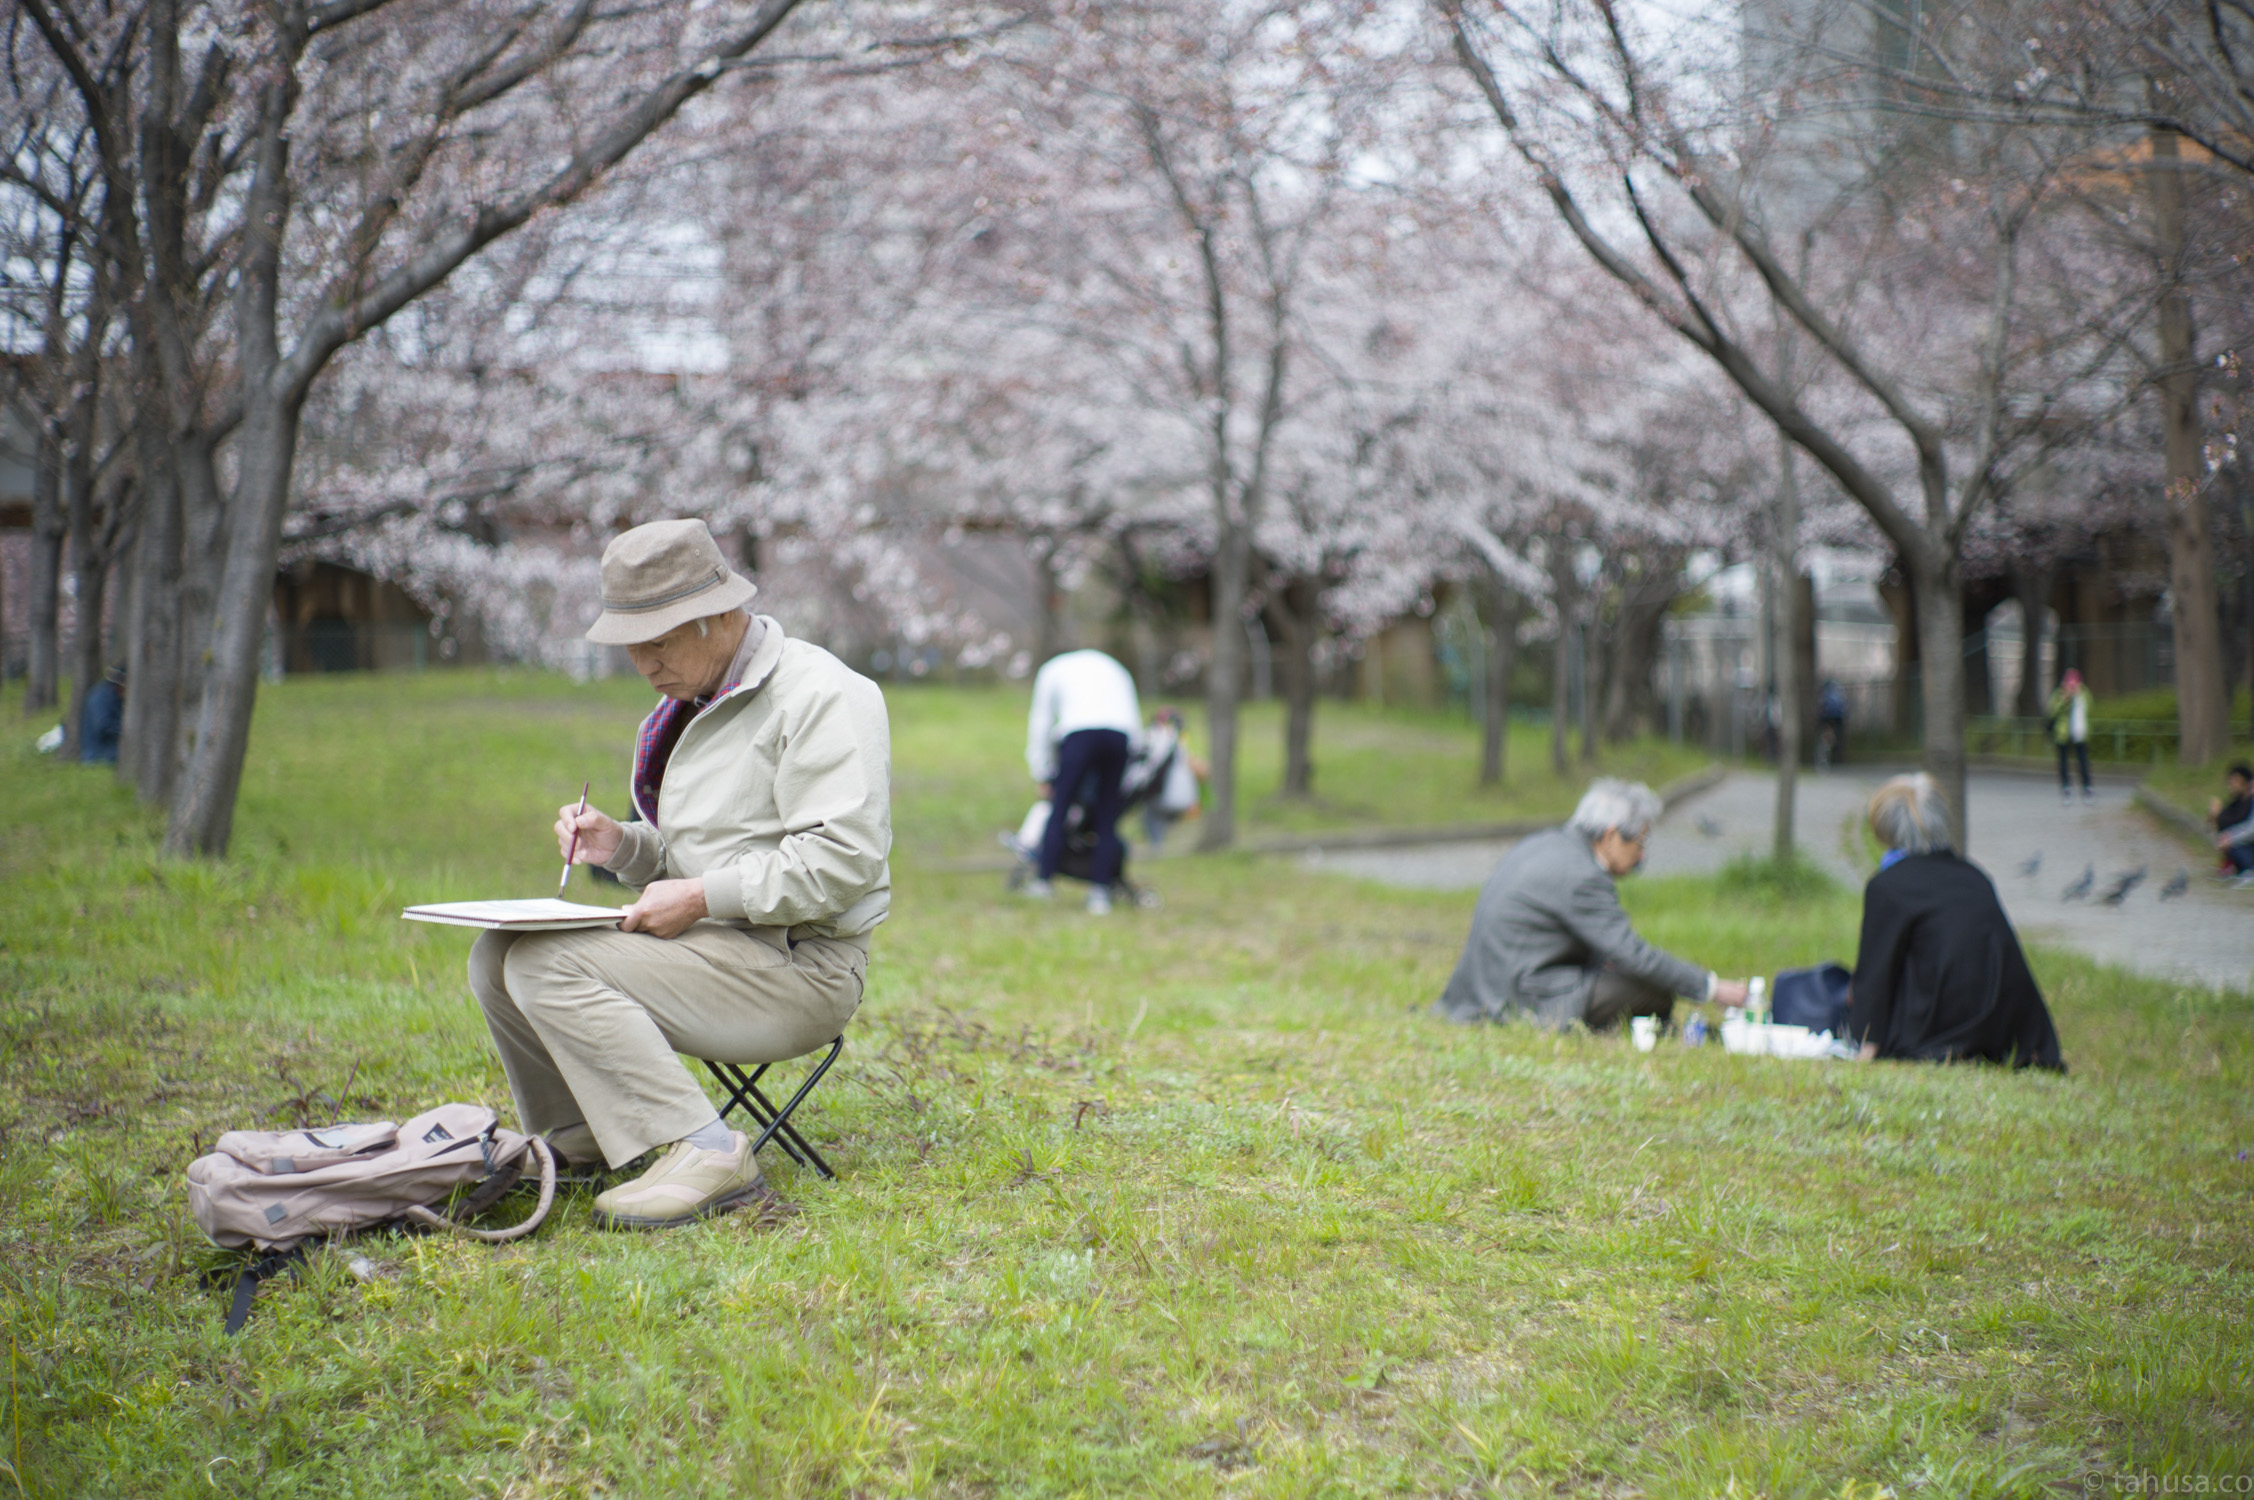 man-painting-drawing-under-tree-enjoying-osaka-castle-park-japan-japanese-street-snap-portrait-using-leica-m9-m9p-Noctilux-50mm-50-f1-f1.0-e58-v1-digital-camera-travel